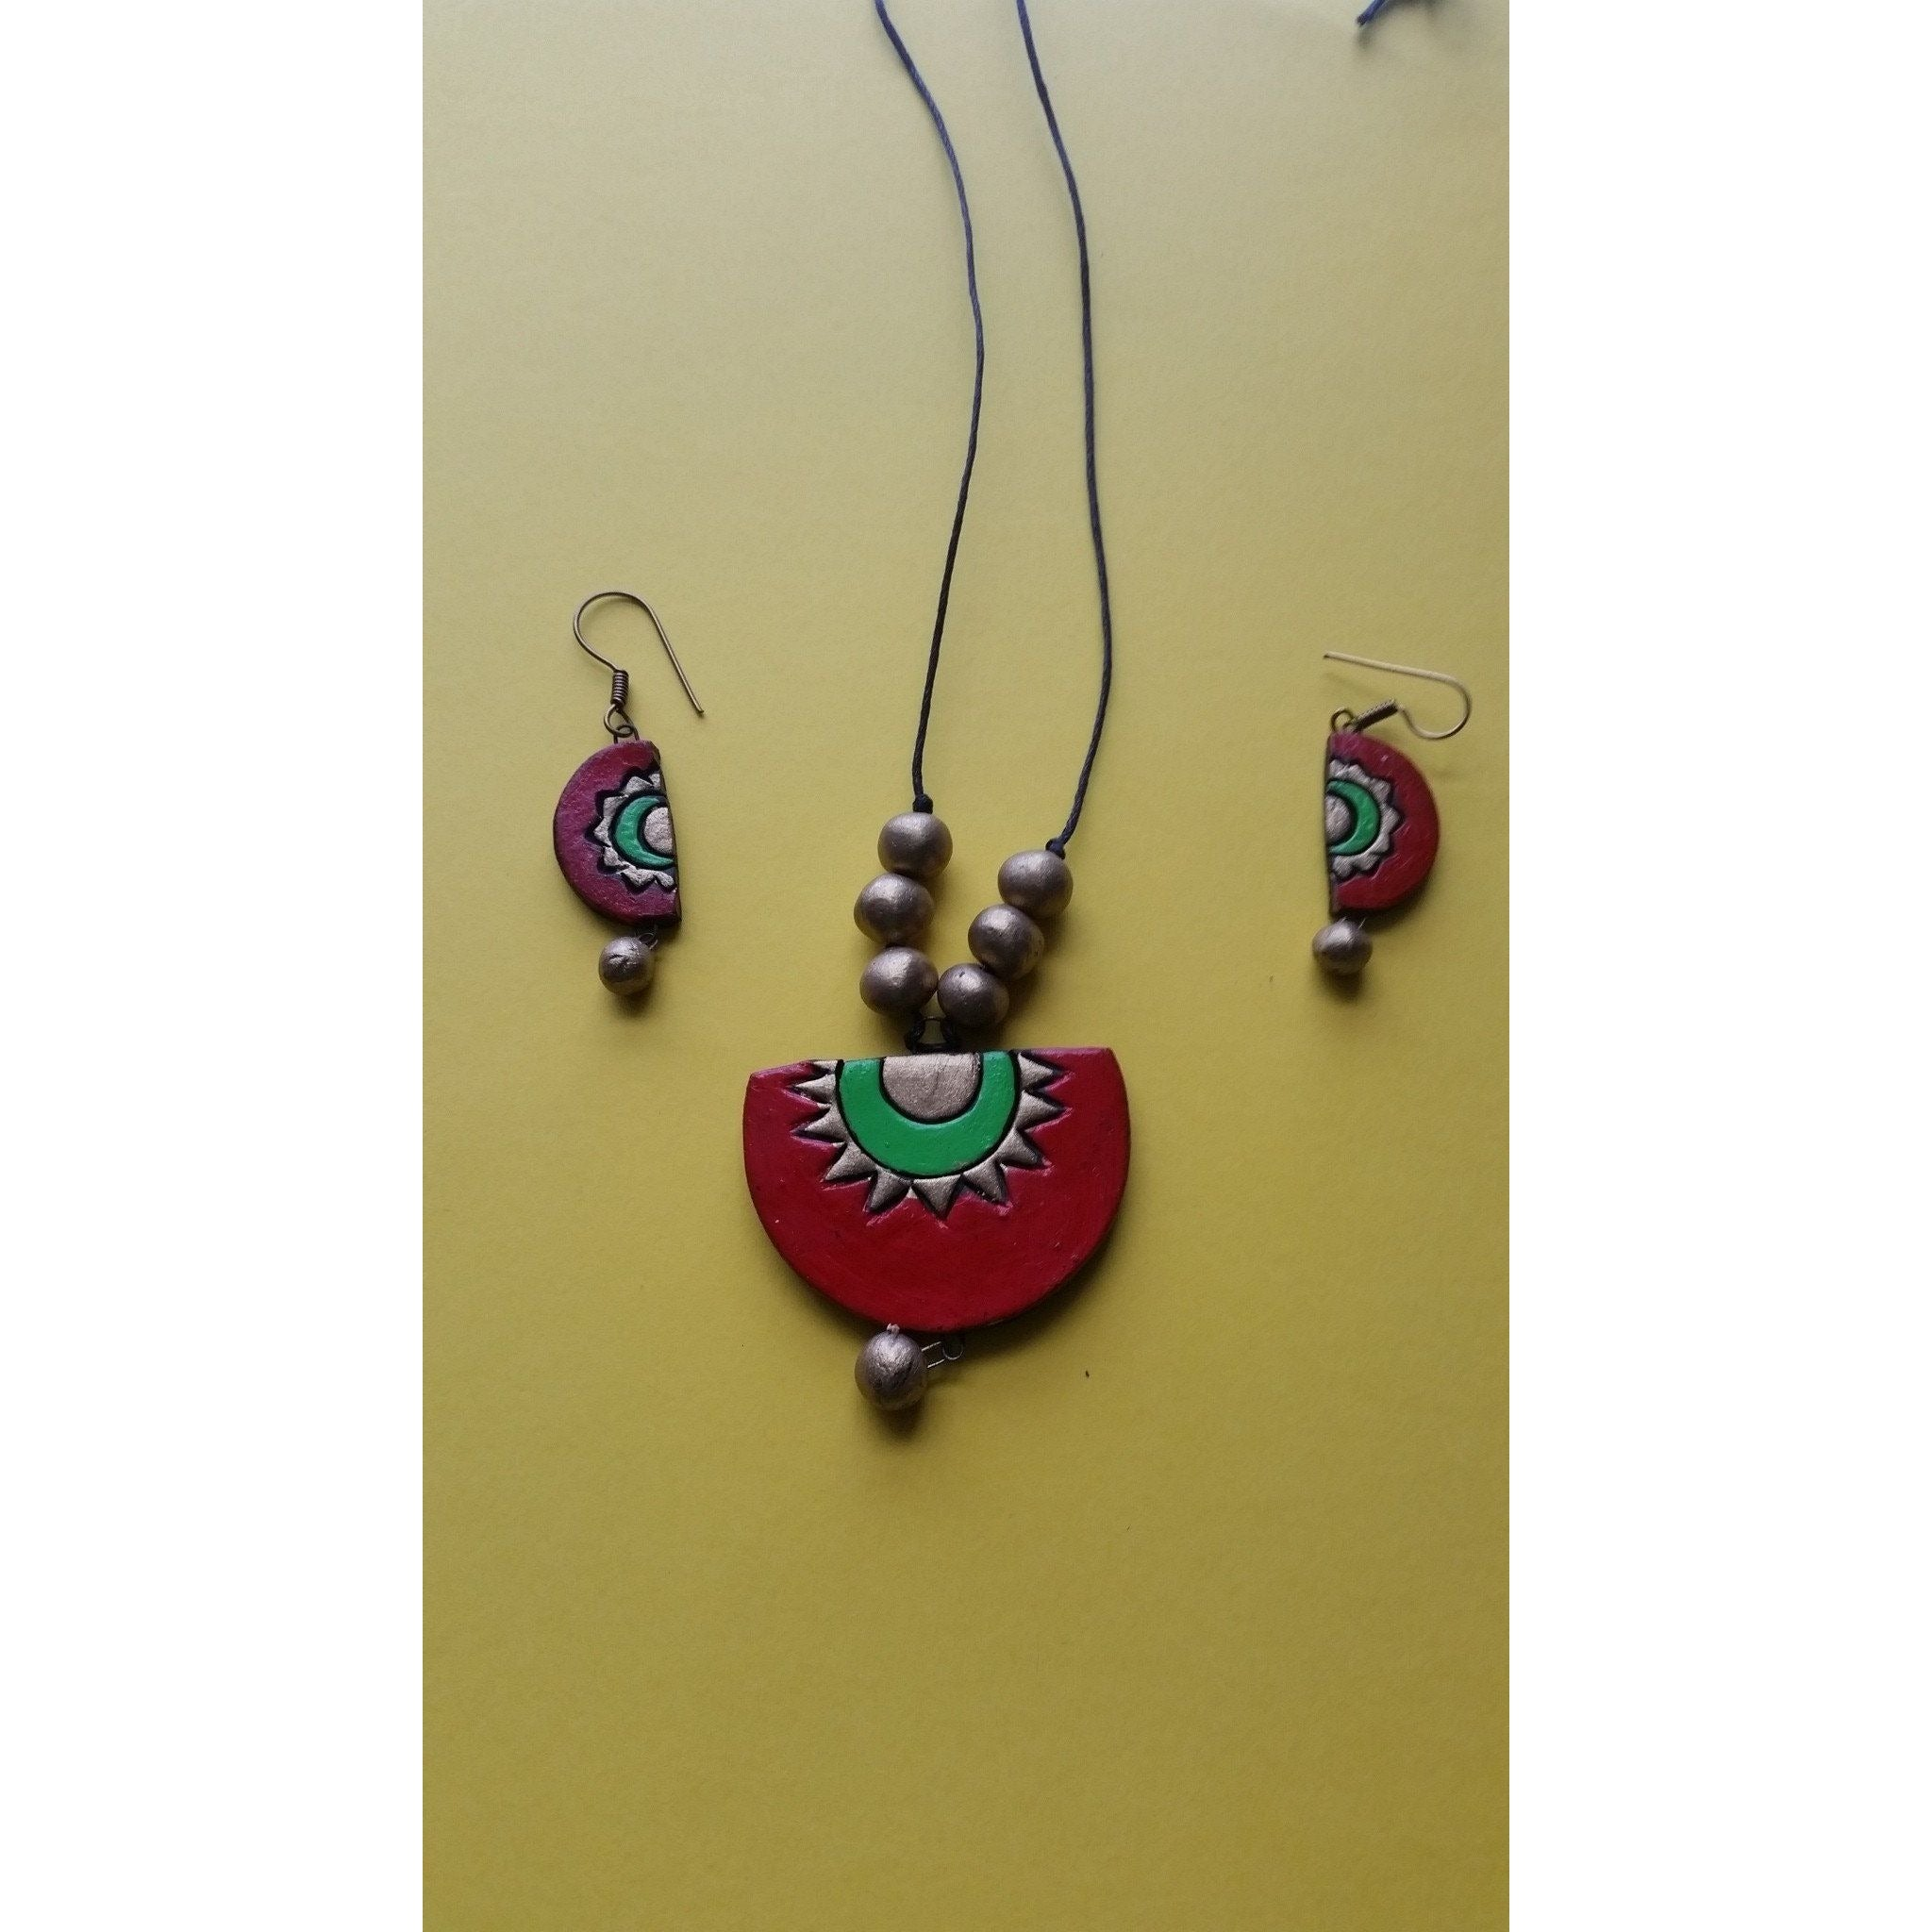 Handmade Terracotta Pendant Chain Set